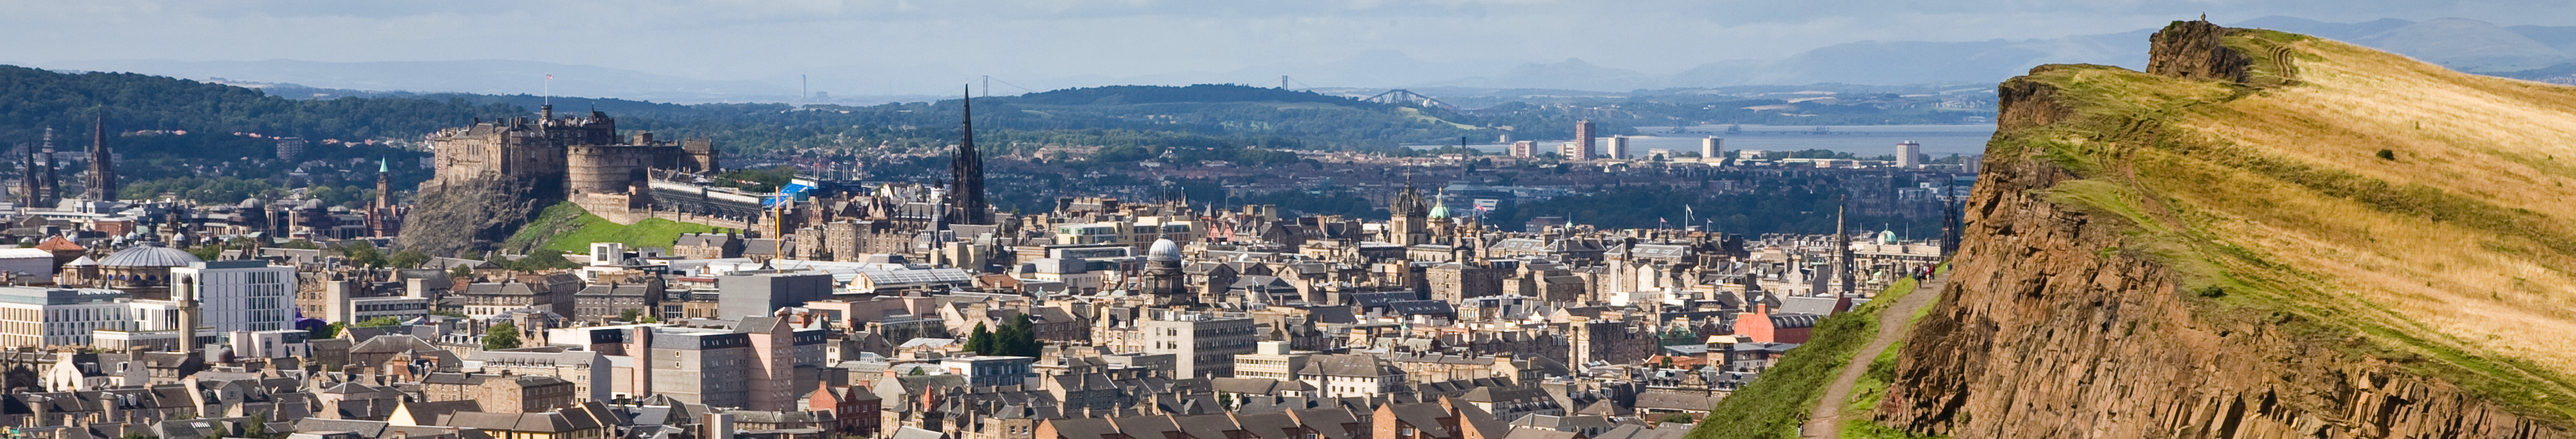 View of Edinburgh, from Arthur's Seat looking towards the castle.